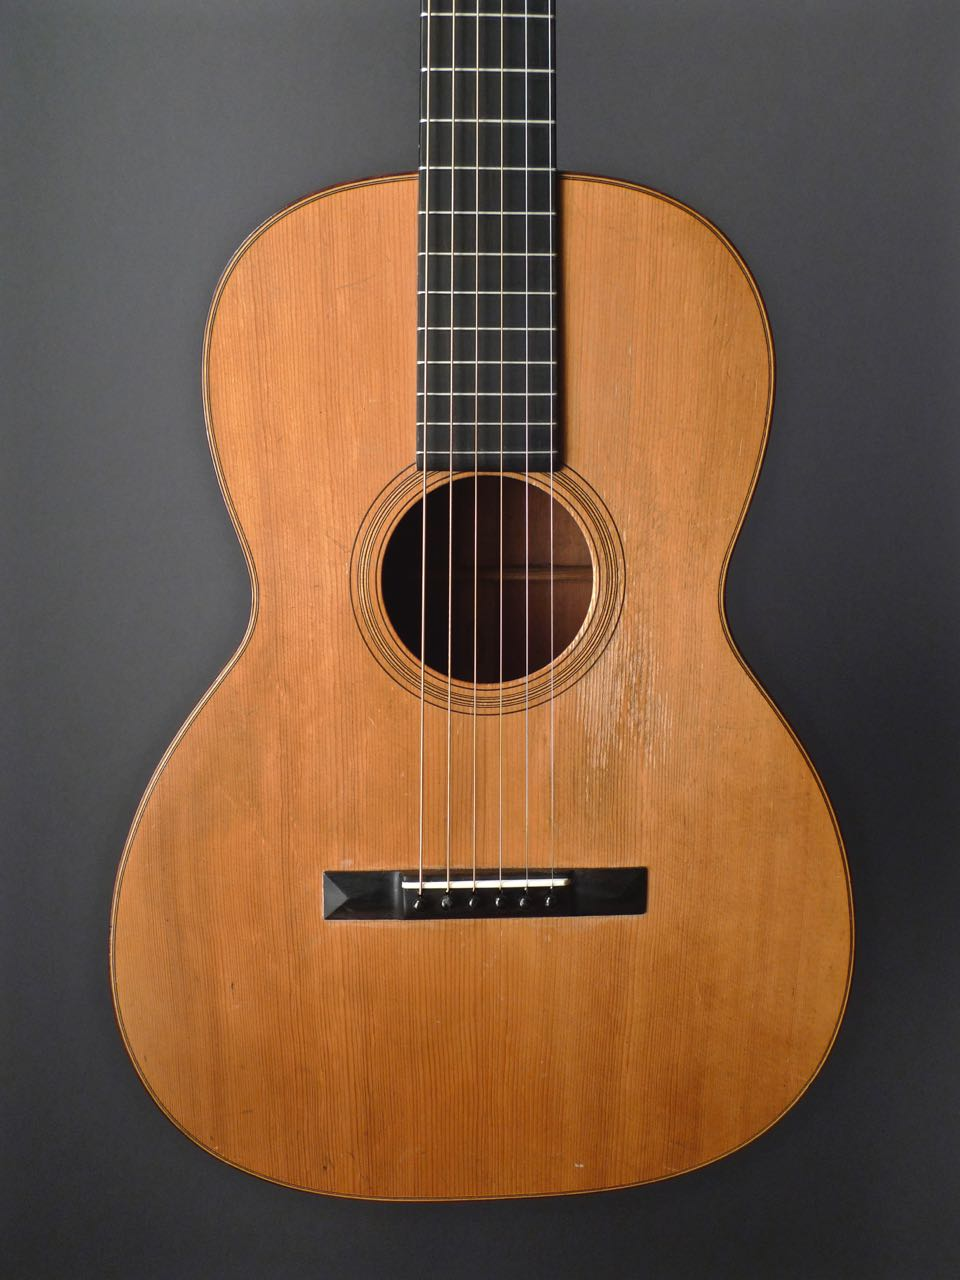 1926 martin 00 18 acoustic guitar at dream guitars. Black Bedroom Furniture Sets. Home Design Ideas